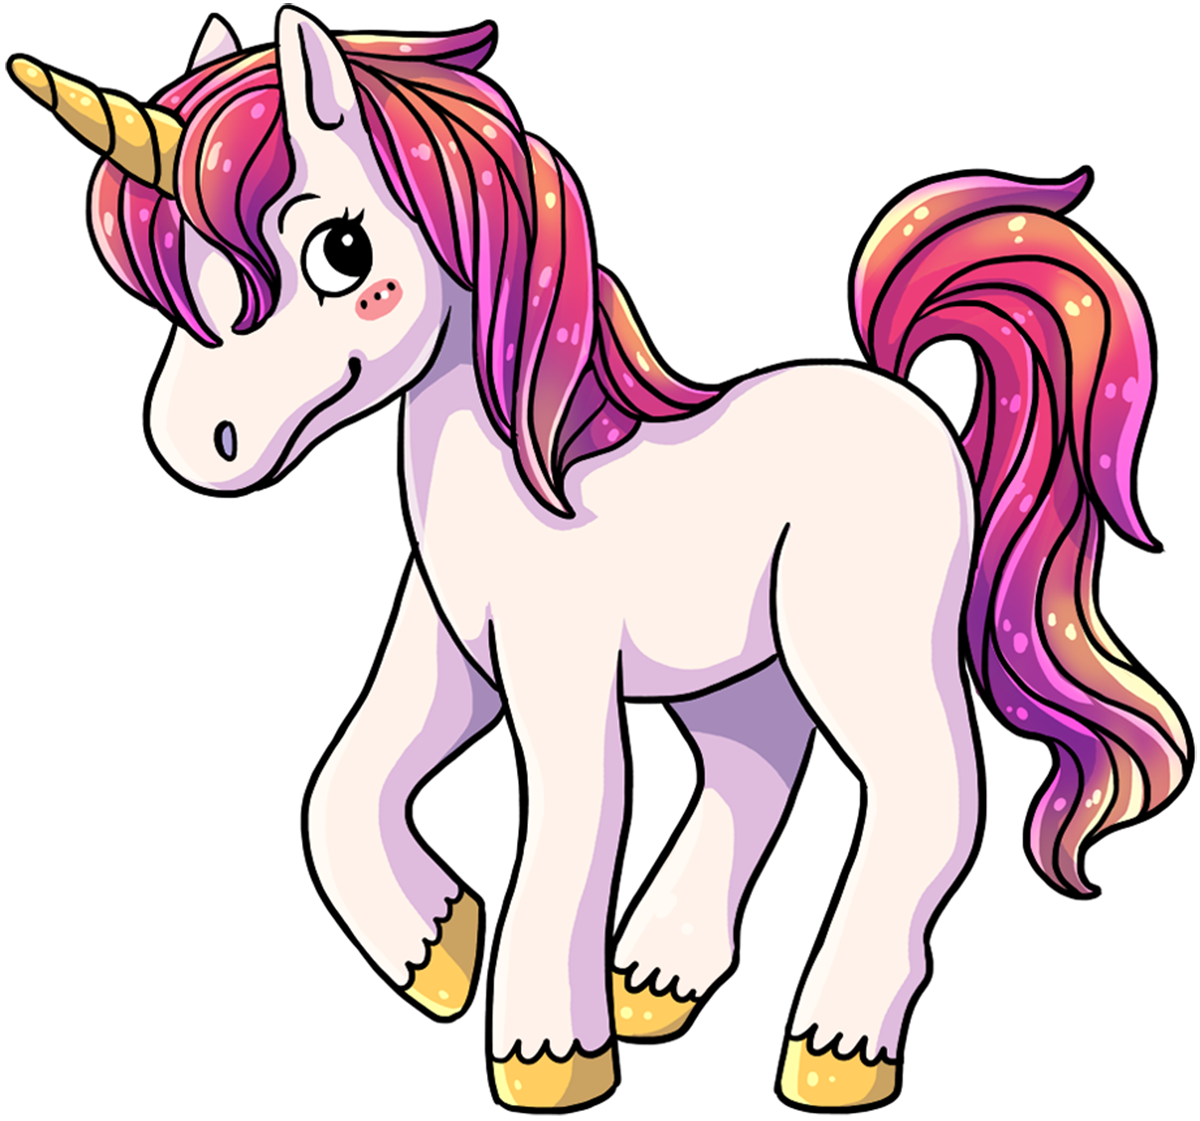 Fire clipart unicorn. Pin by marina on